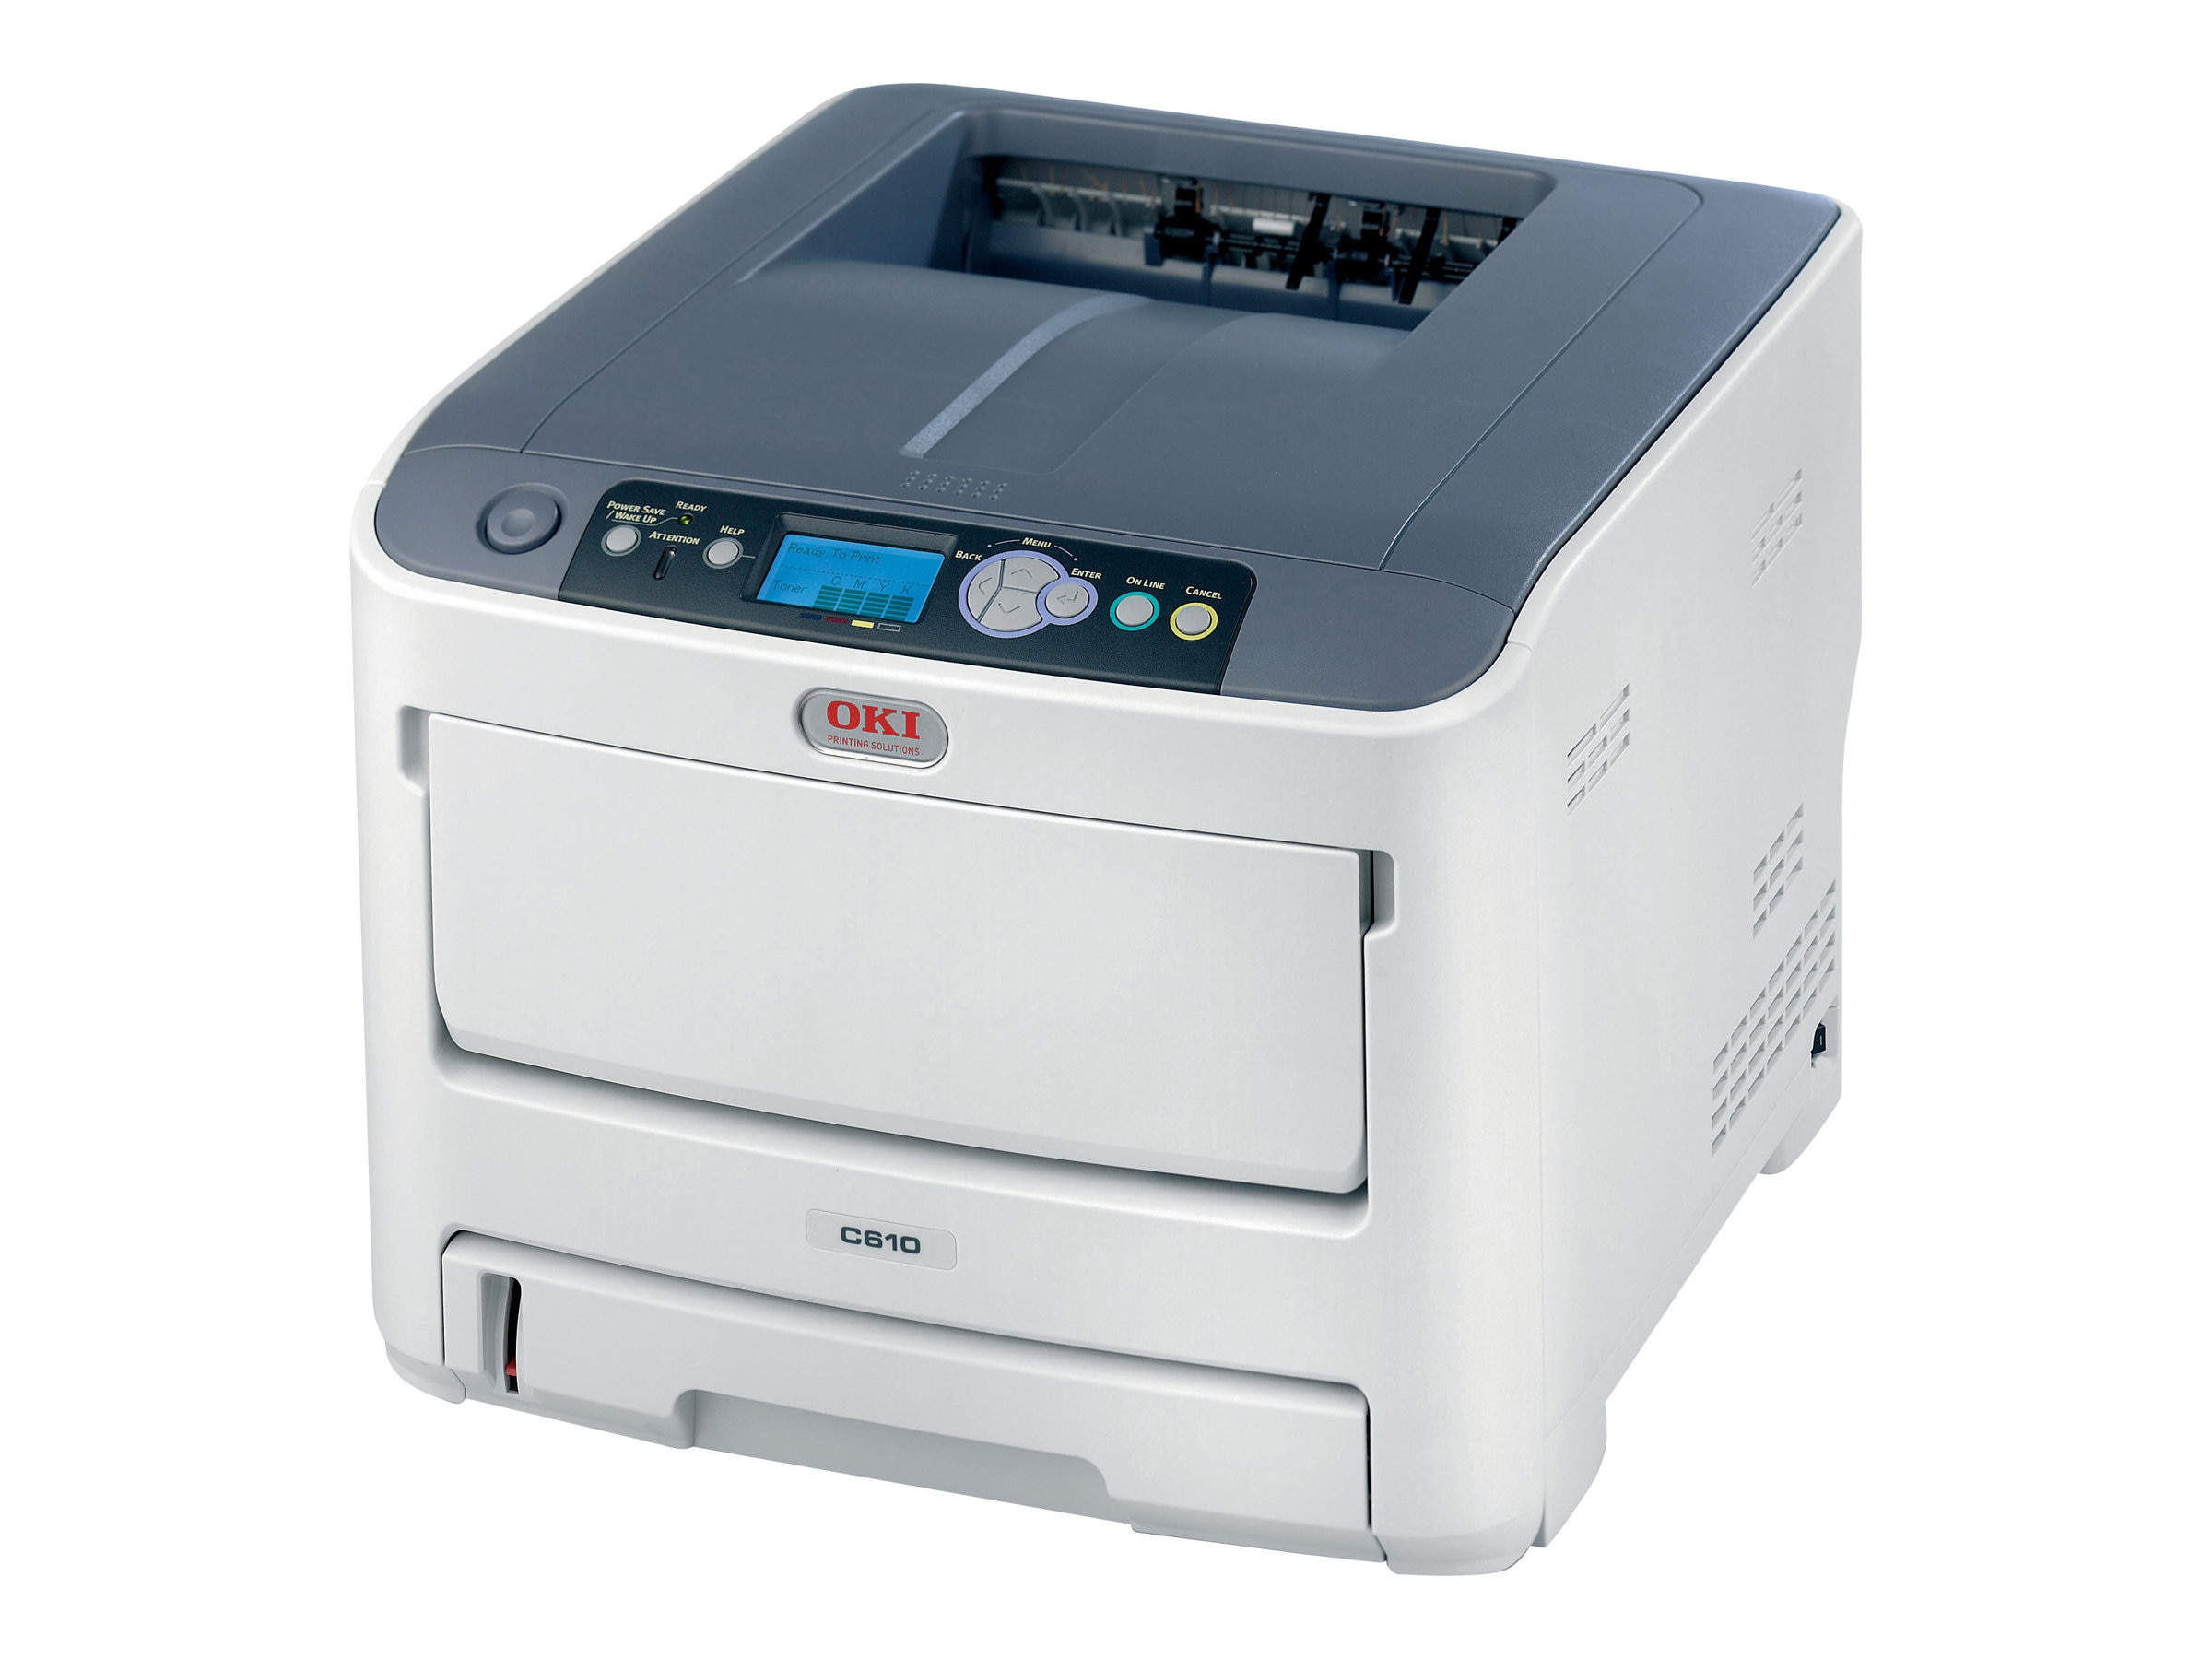 Oki C610n Digital Color Printer